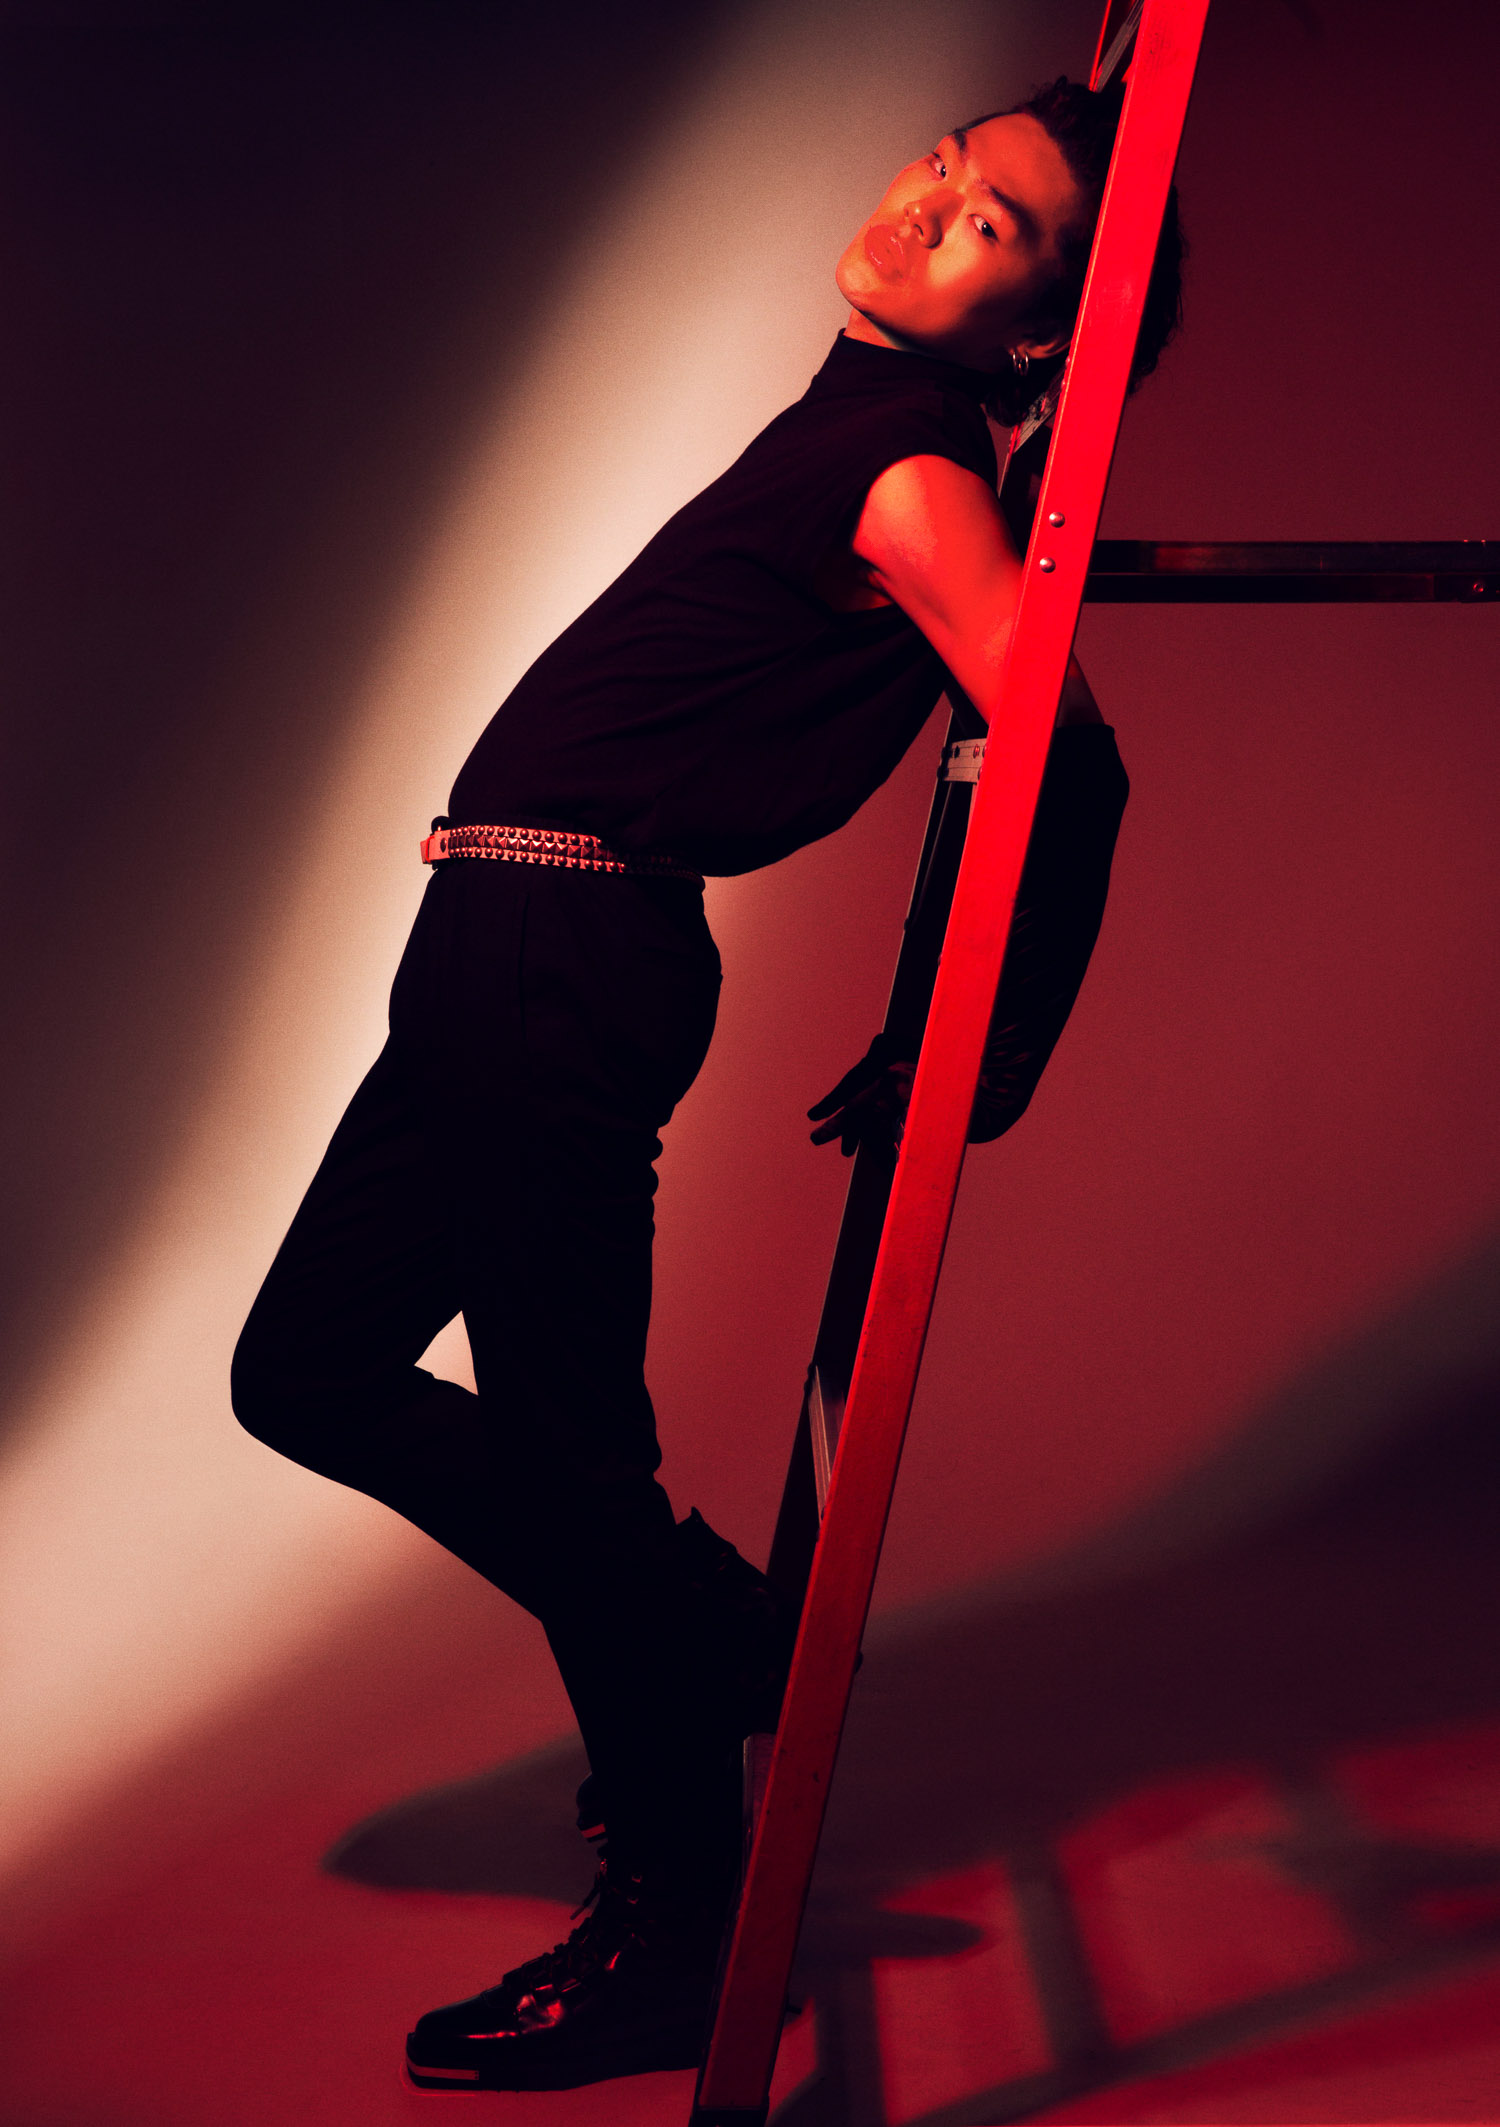 Man in red light leaning on ladder.